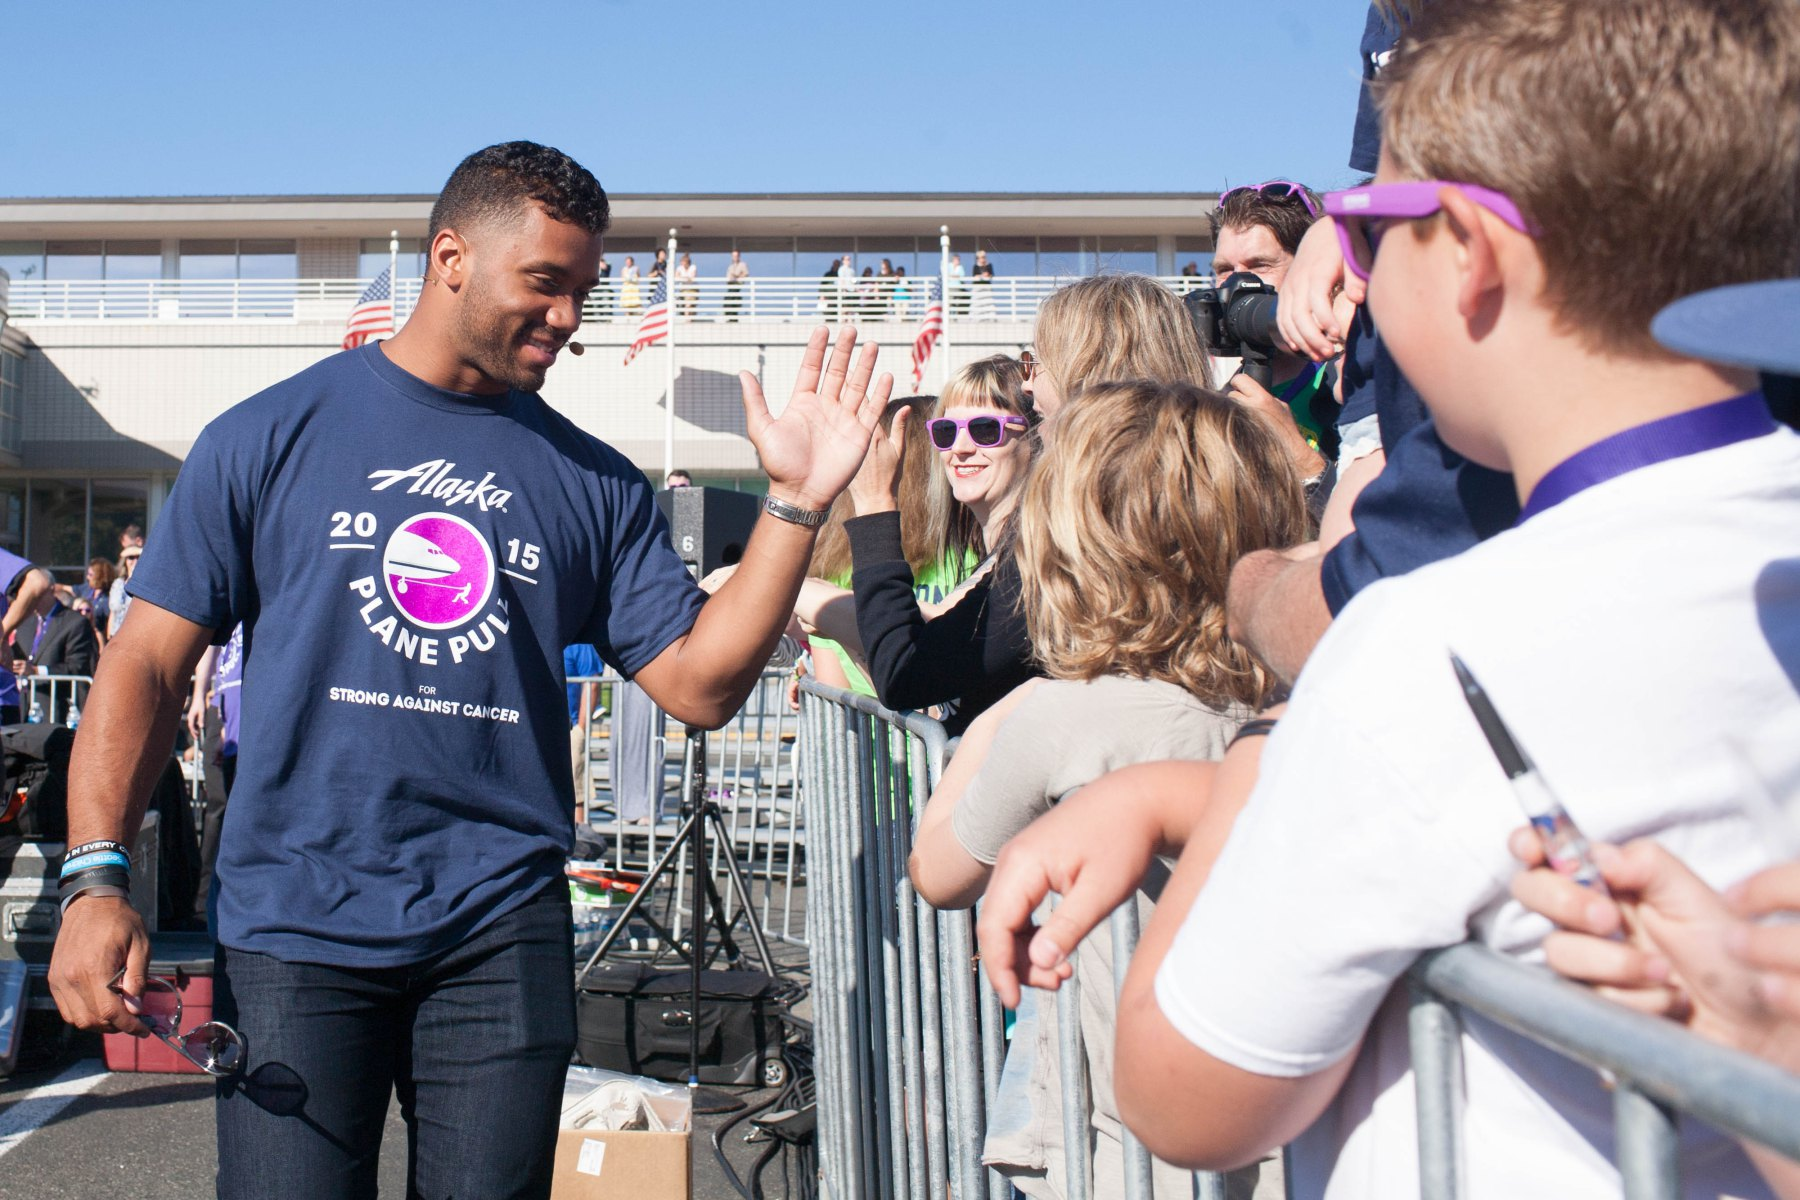 Russell Wilson gives high-fives to fans during the Alaska Airlines Plane Pull benefiting Strong Against Cancer at The Museum of Flight in Seattle on Tuesday, July 28, 2015.